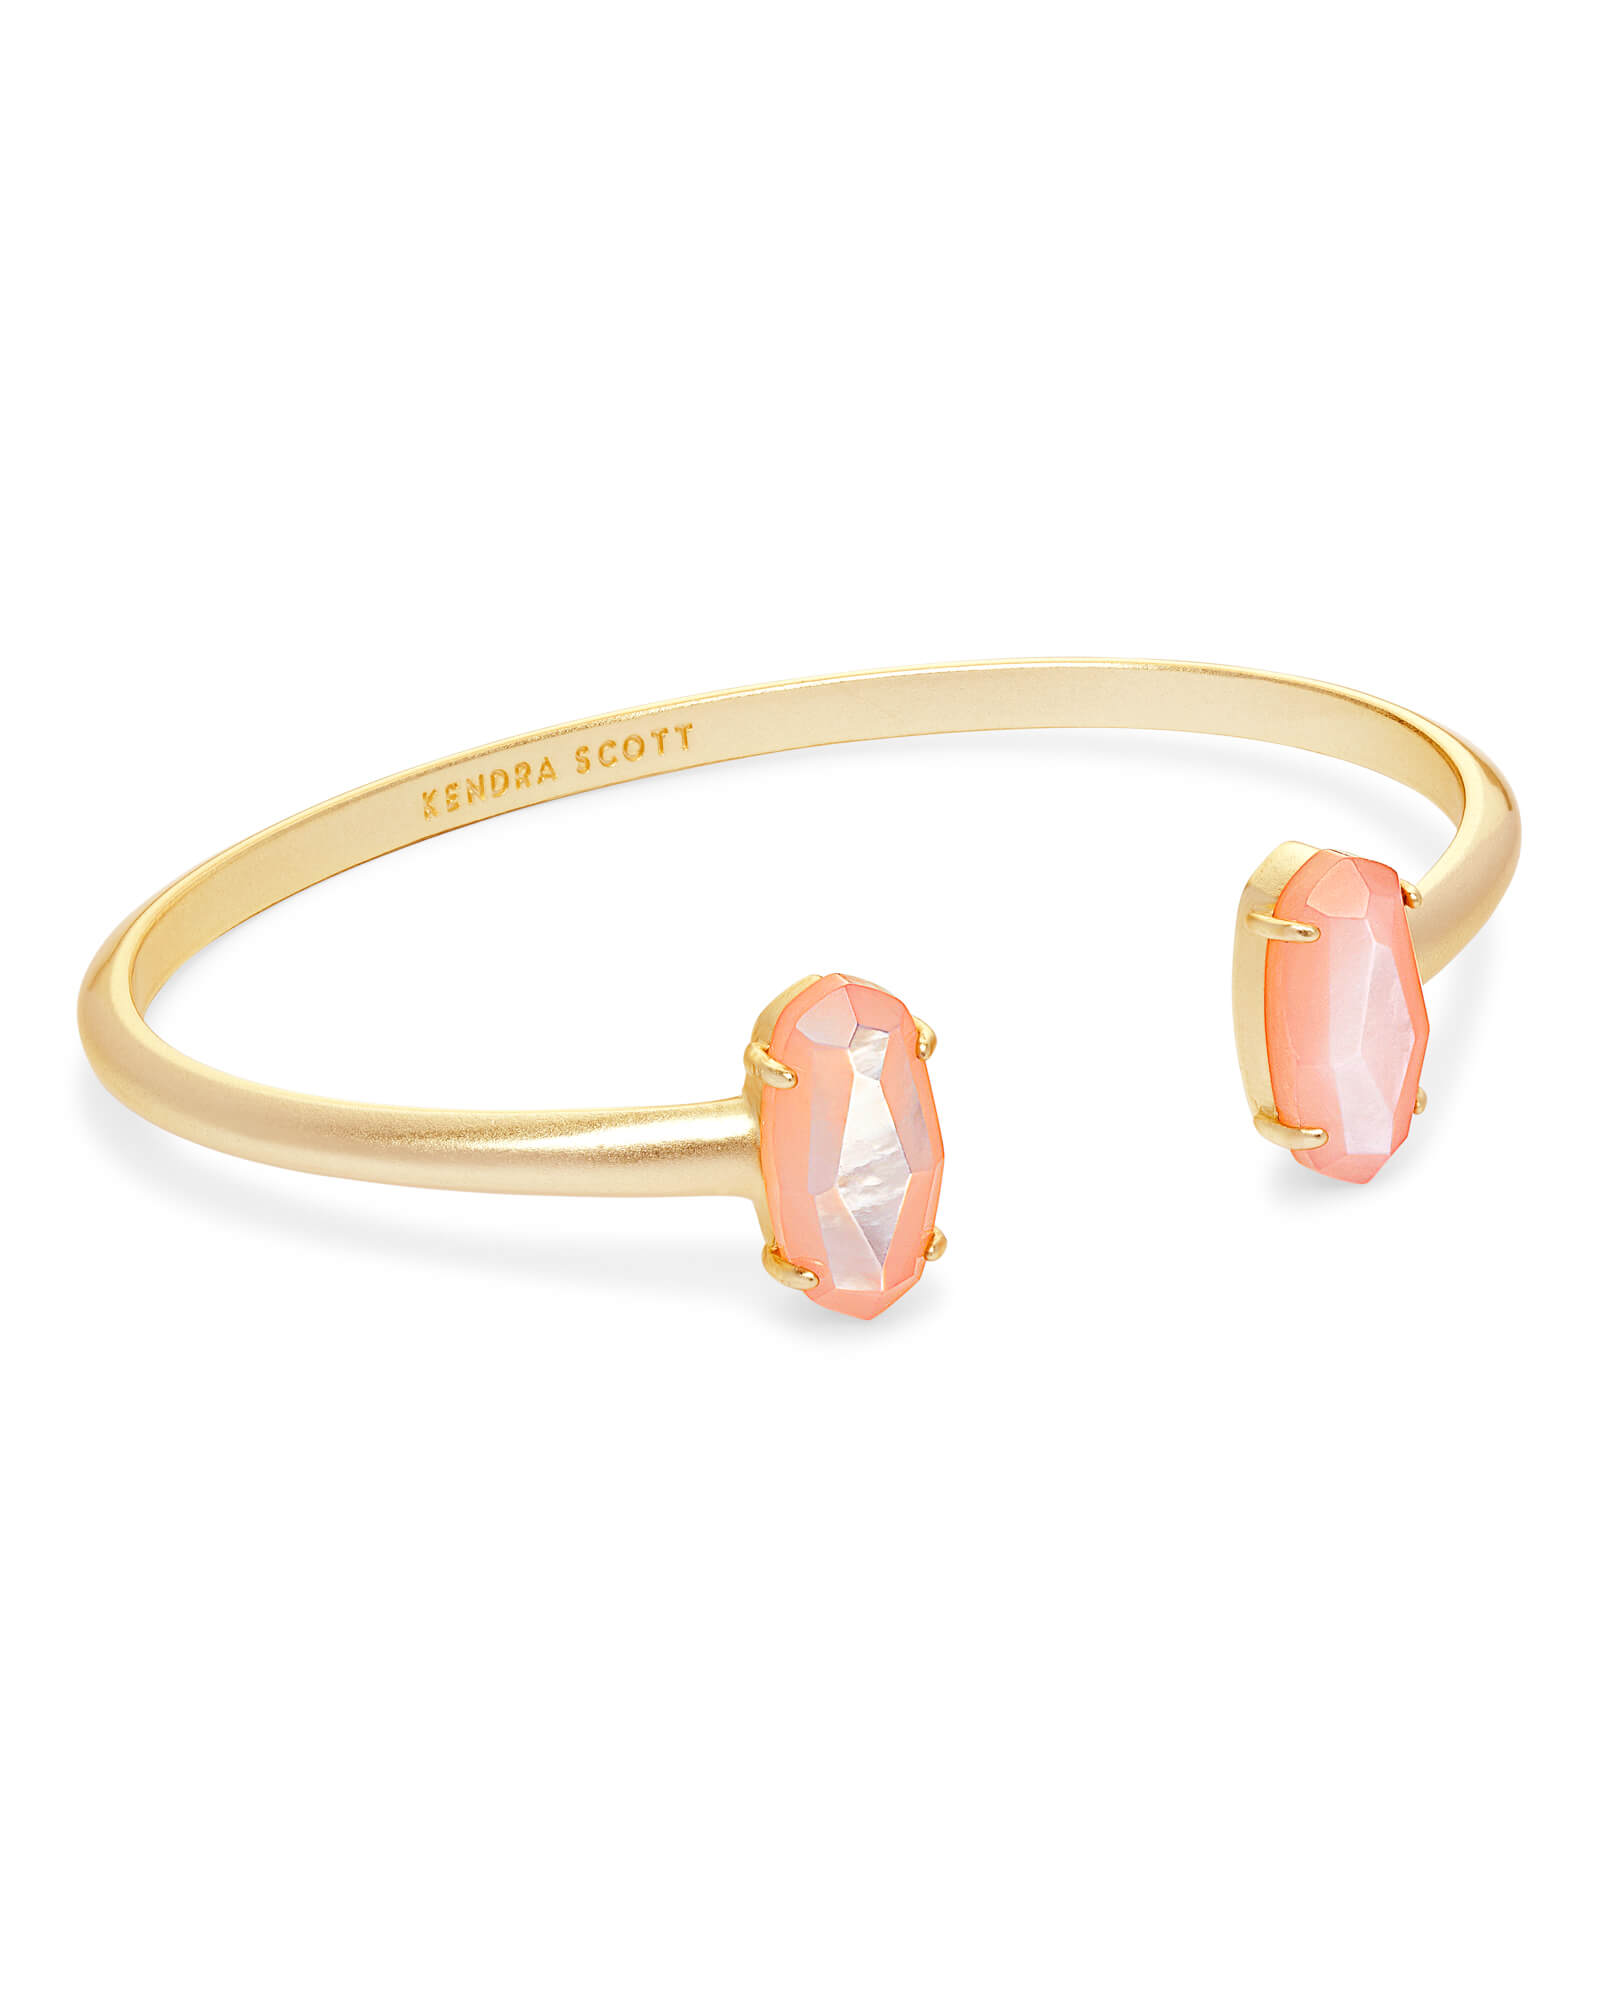 Edie Gold Cuff Bracelet in Peach Pearl